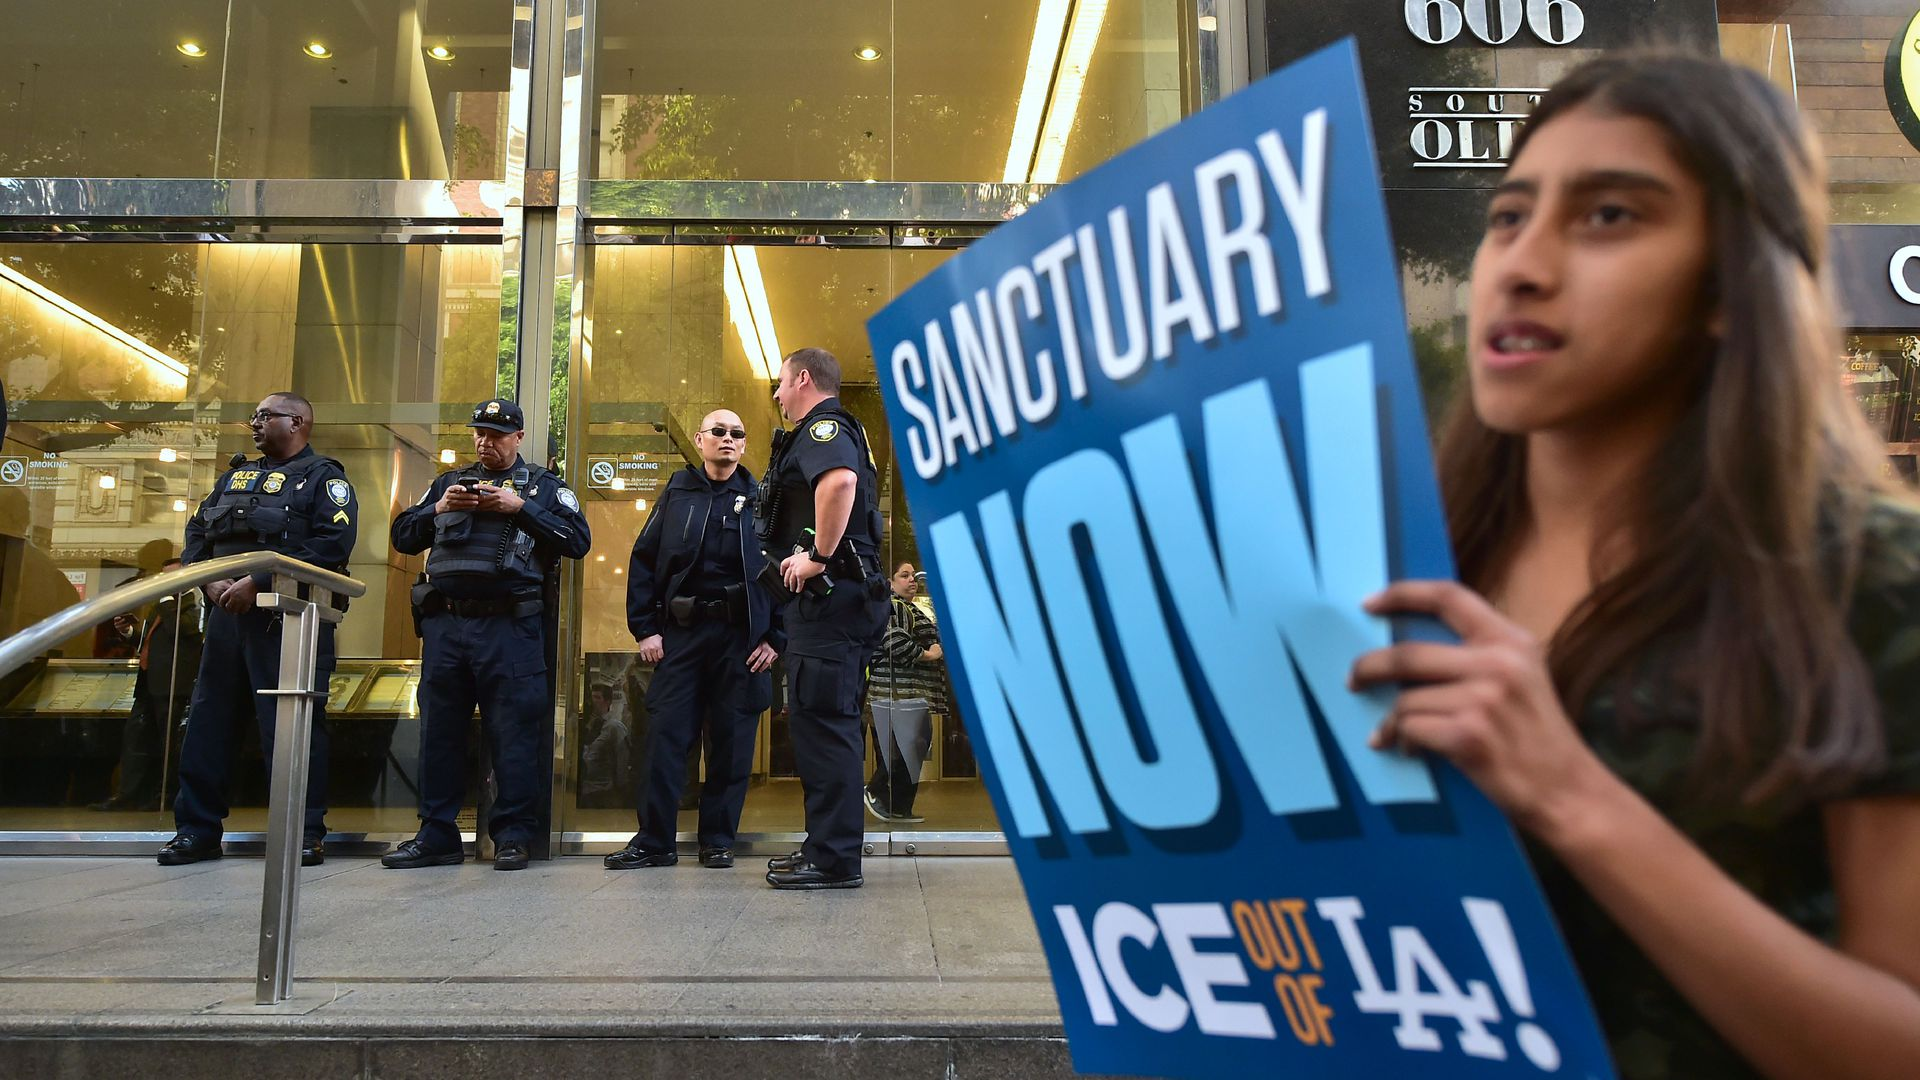 Department of Homeland Security police officers stand guard in front of a Los Angeles Immigration Court building during a rally against an arrest by ICE agents.